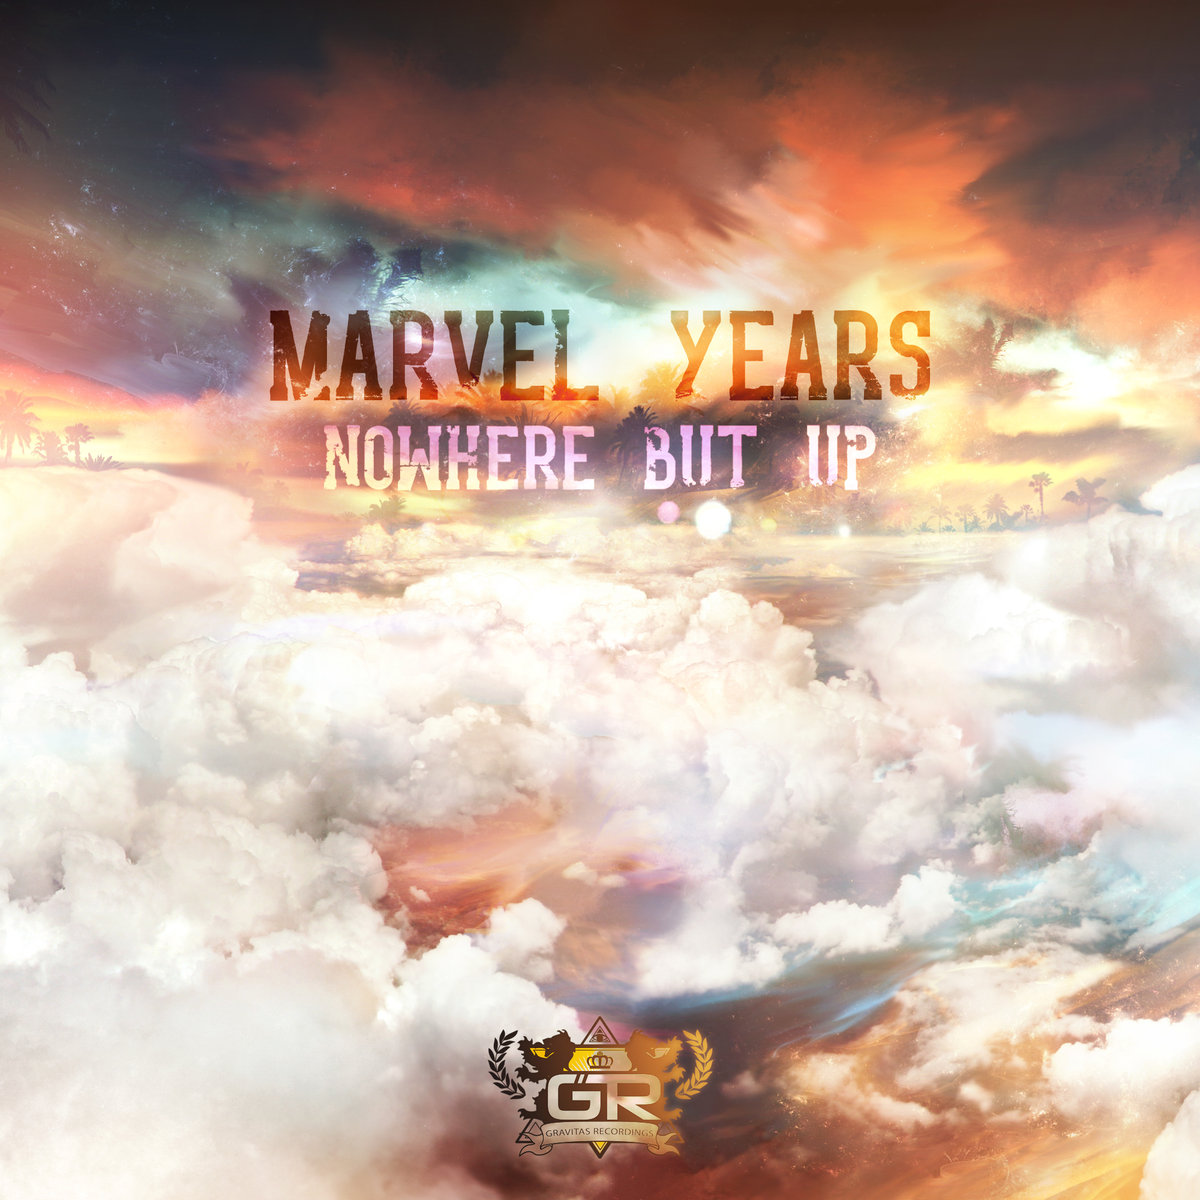 Marvel Years - Nowhere But Up